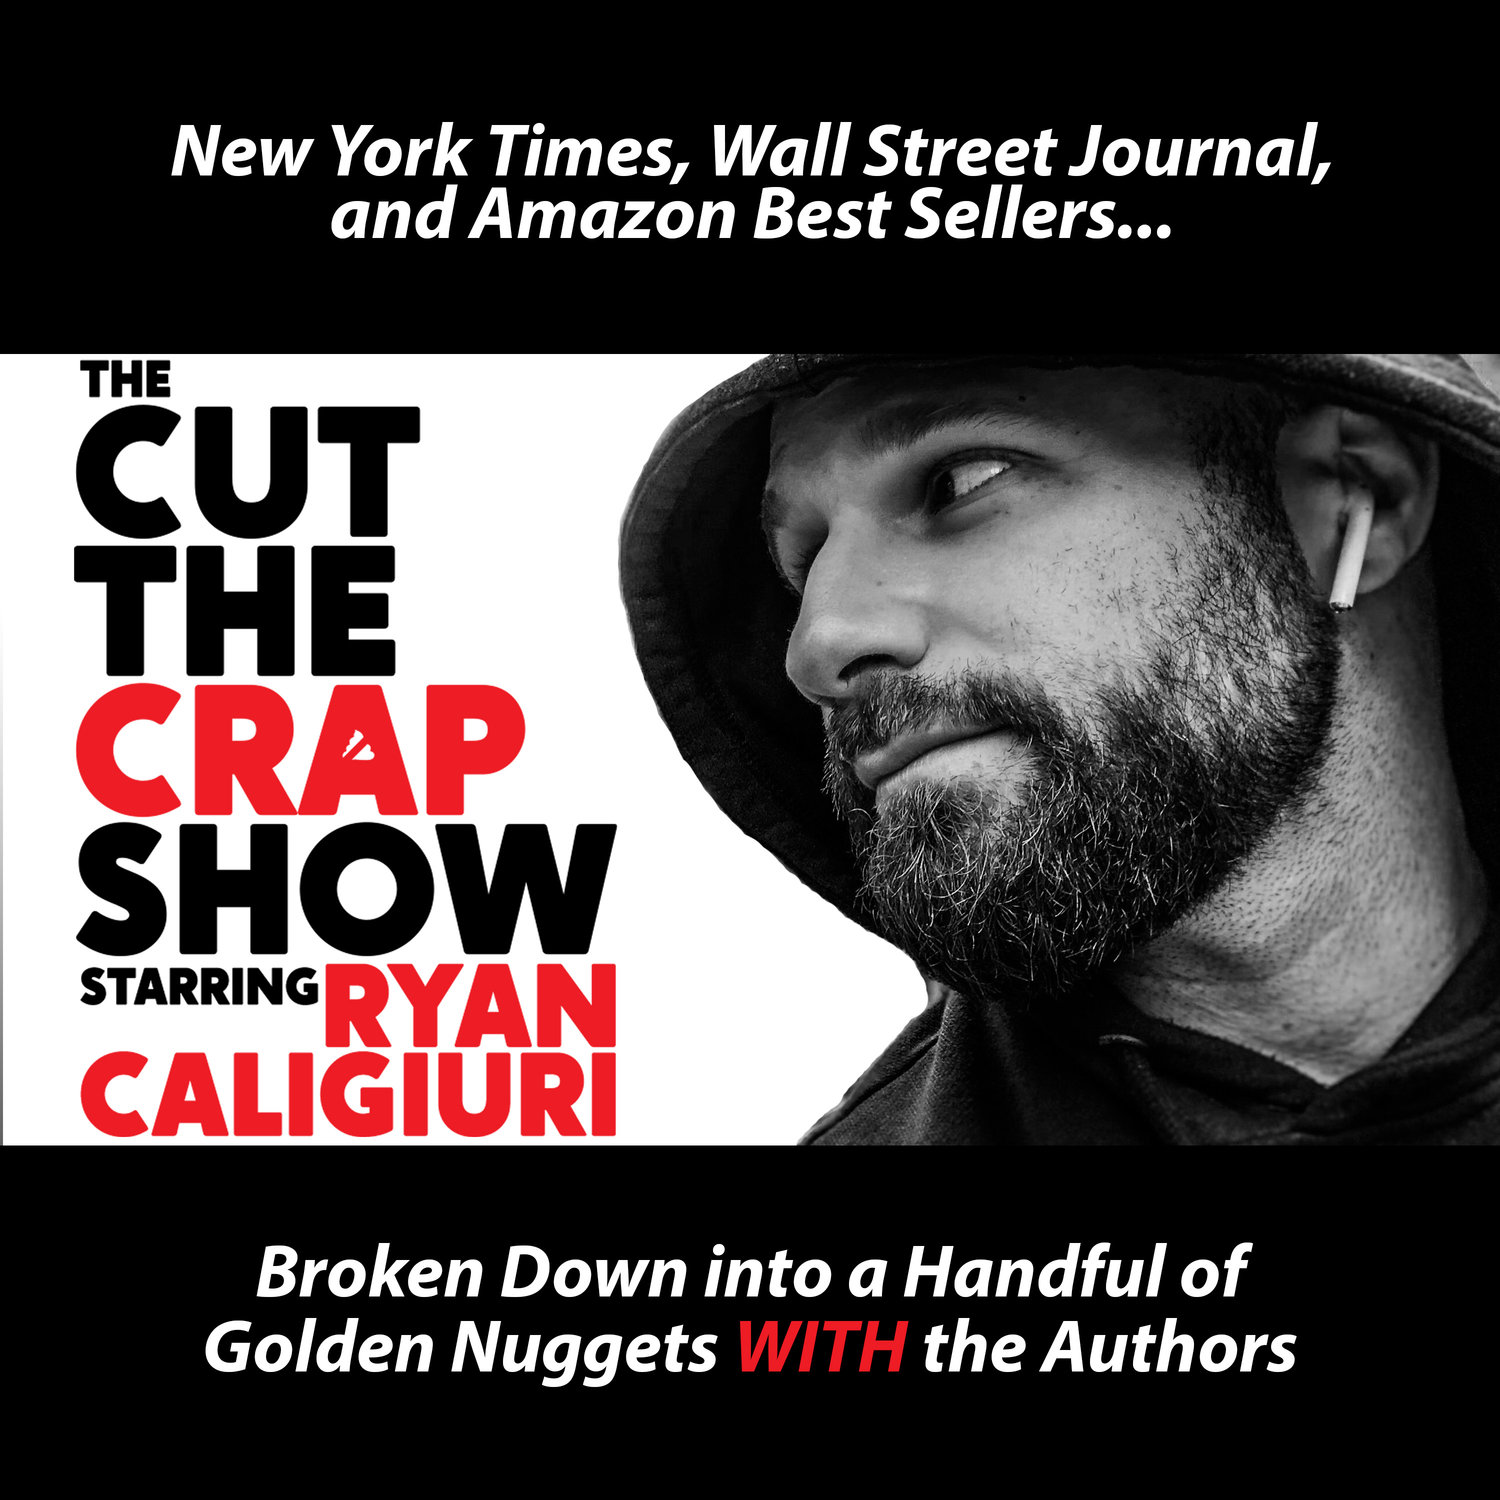 The Cut the Crap Show